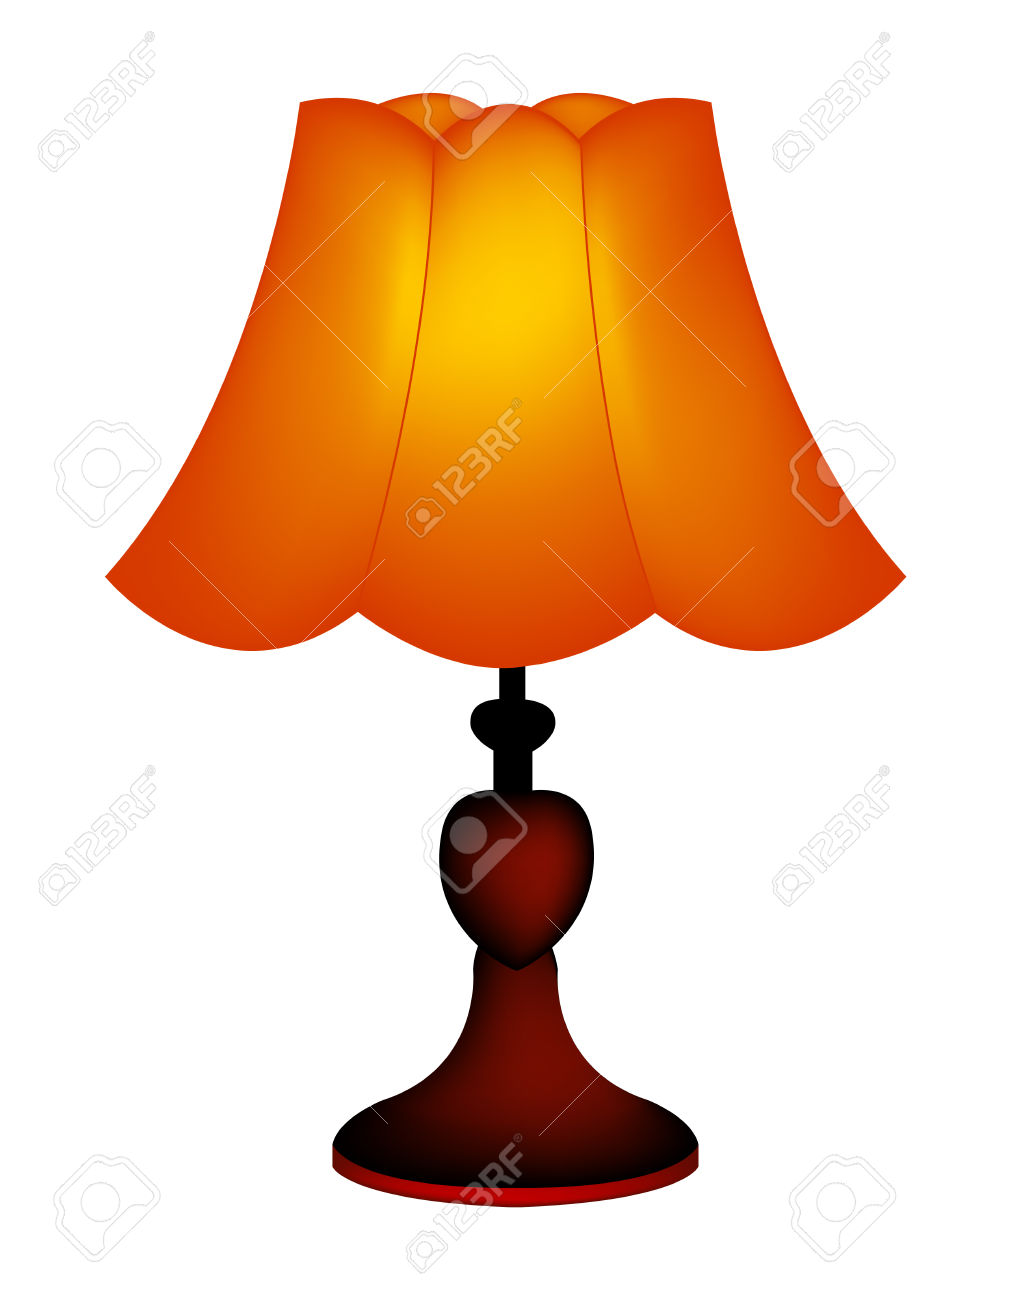 Lamp clipart outdoor lamp. Table pencil and in